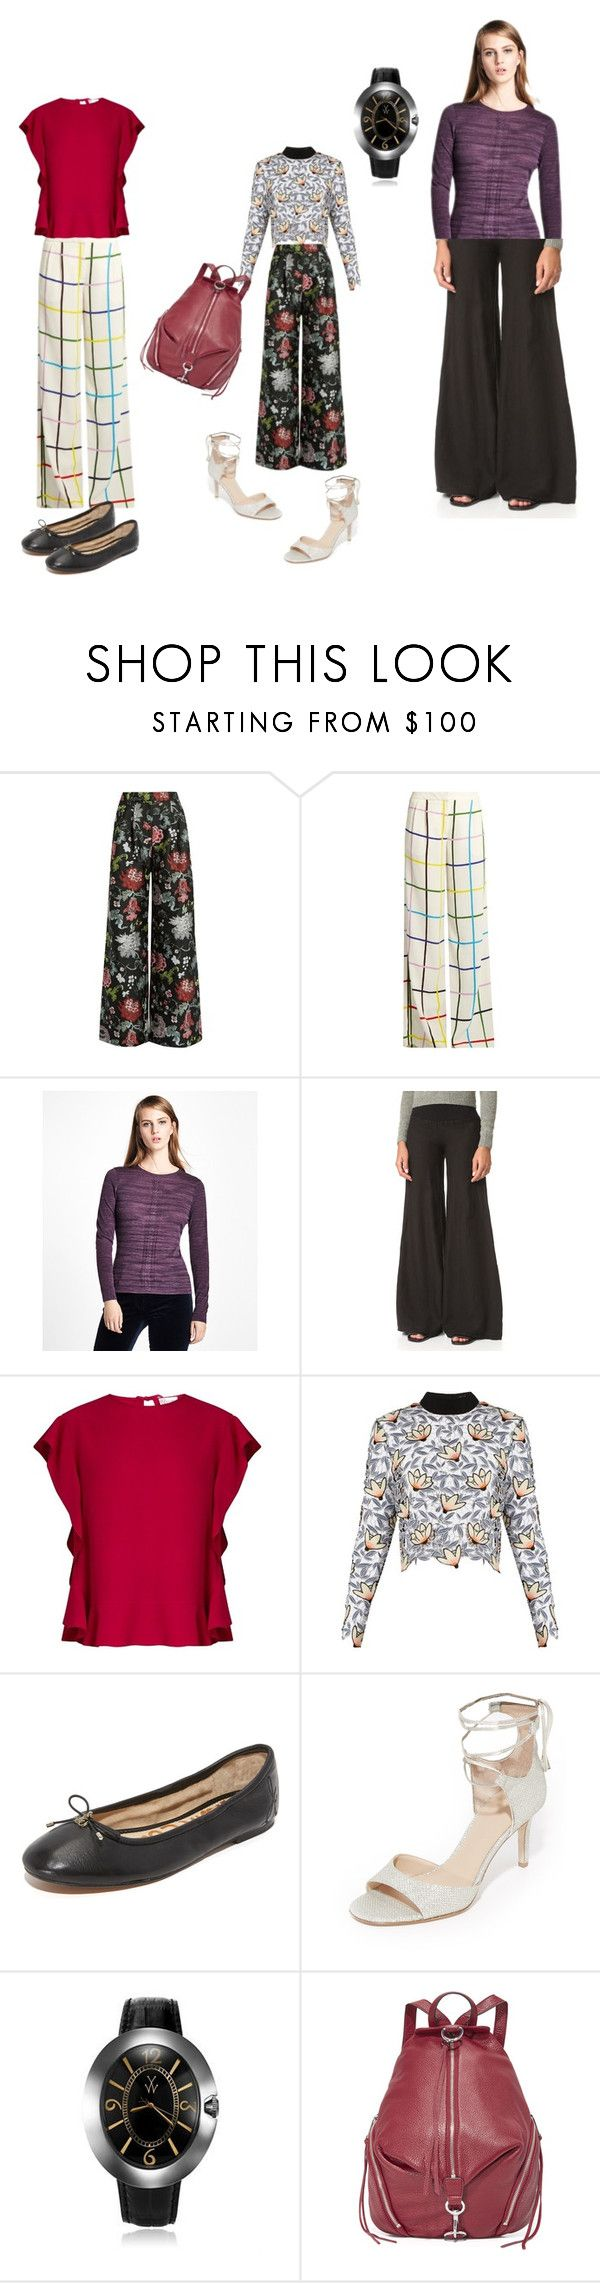 """""""Wide-leg Pants..**"""" by yagna ❤ liked on Polyvore featuring ADAM, Mary Katrantzou, Brooks Brothers, Enza Costa, RED Valentino, self-portrait, Sam Edelman, Diane Von Furstenberg, Toy Watch and Rebecca Minkoff"""